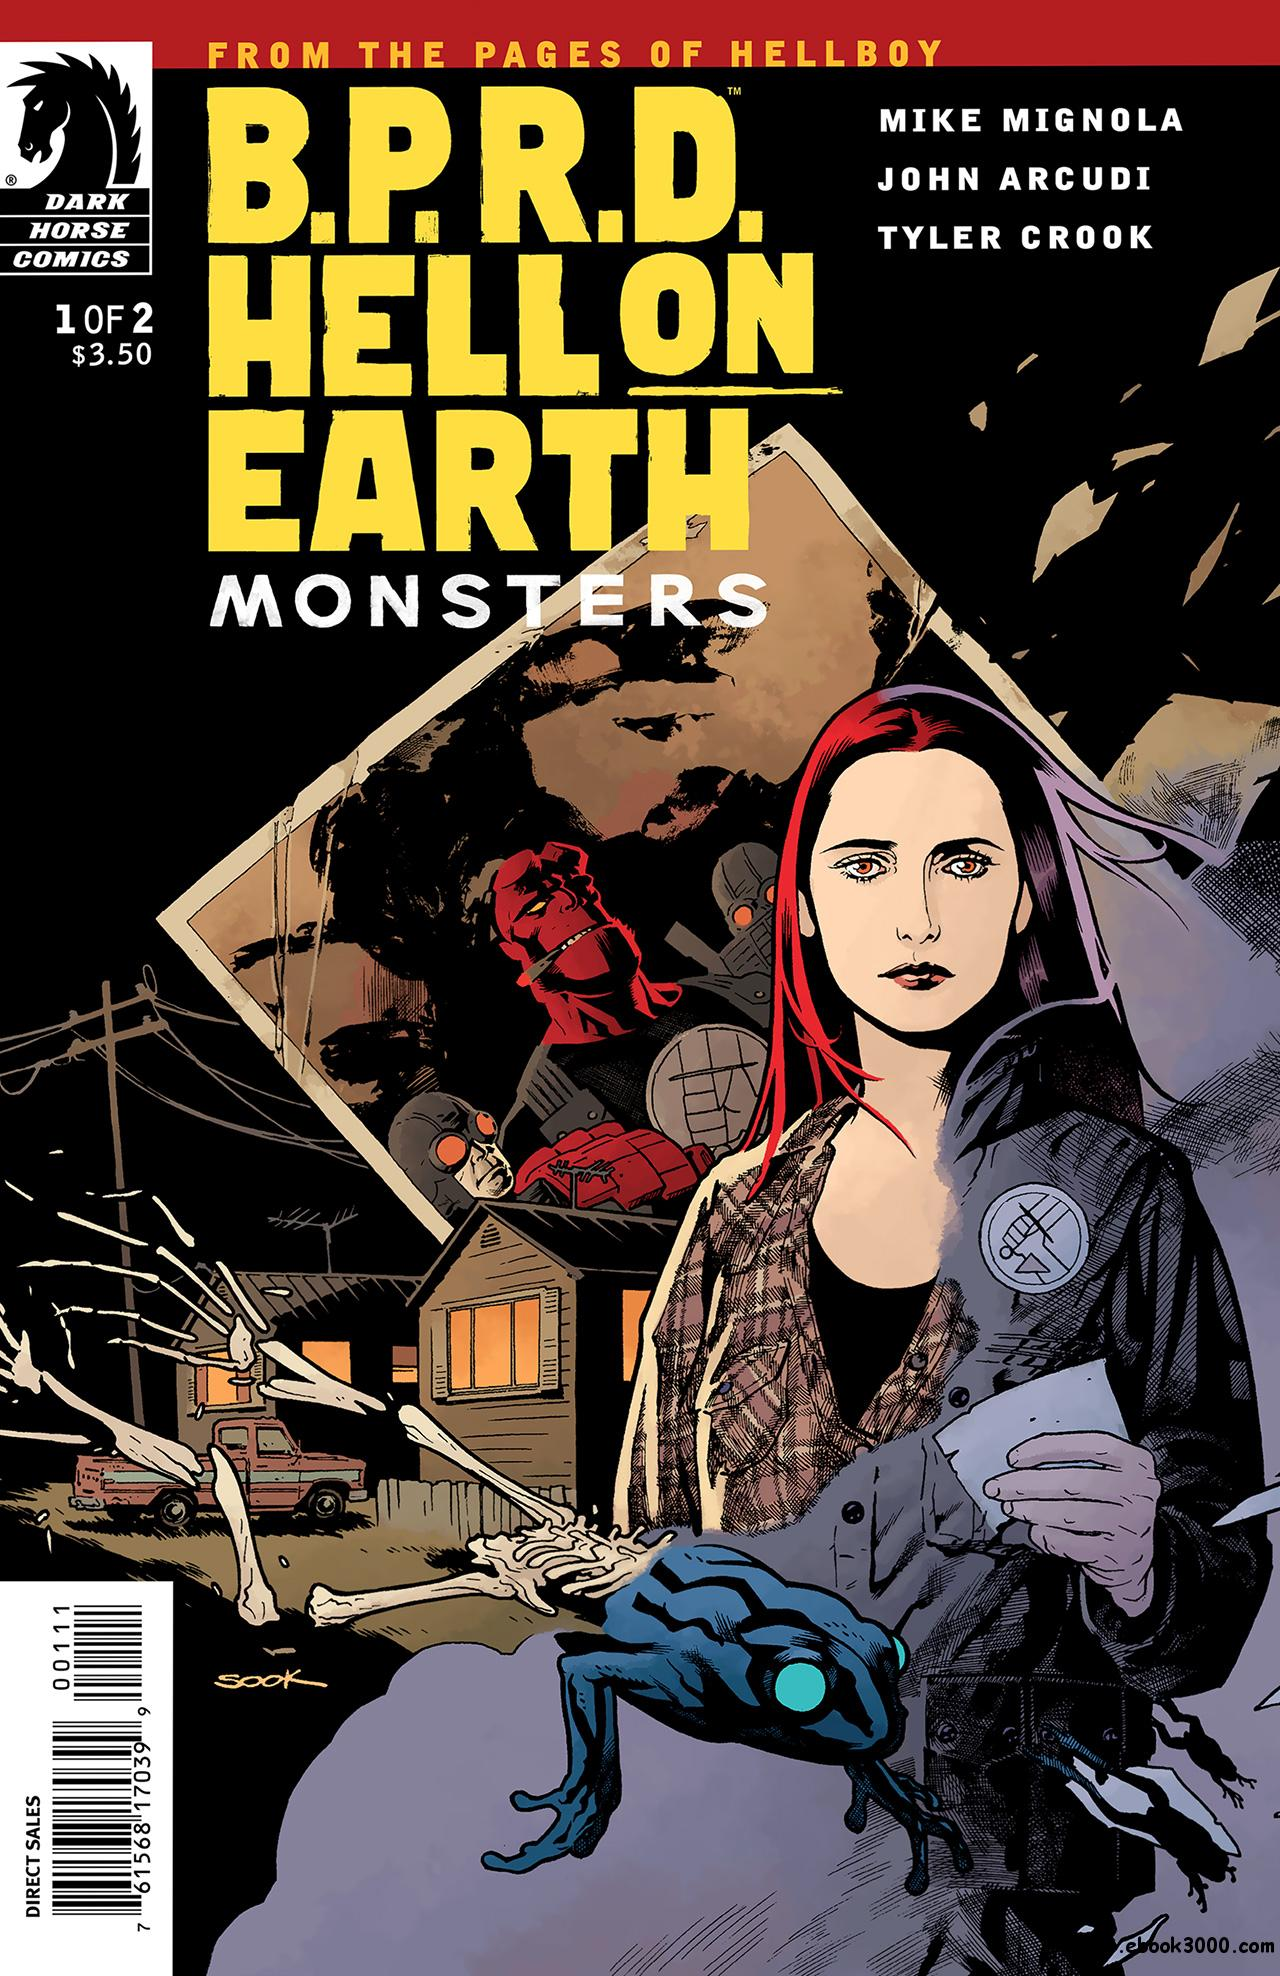 B.P.R.D. Hell on Earth - Monsters #1 (of 02) (2011) free download